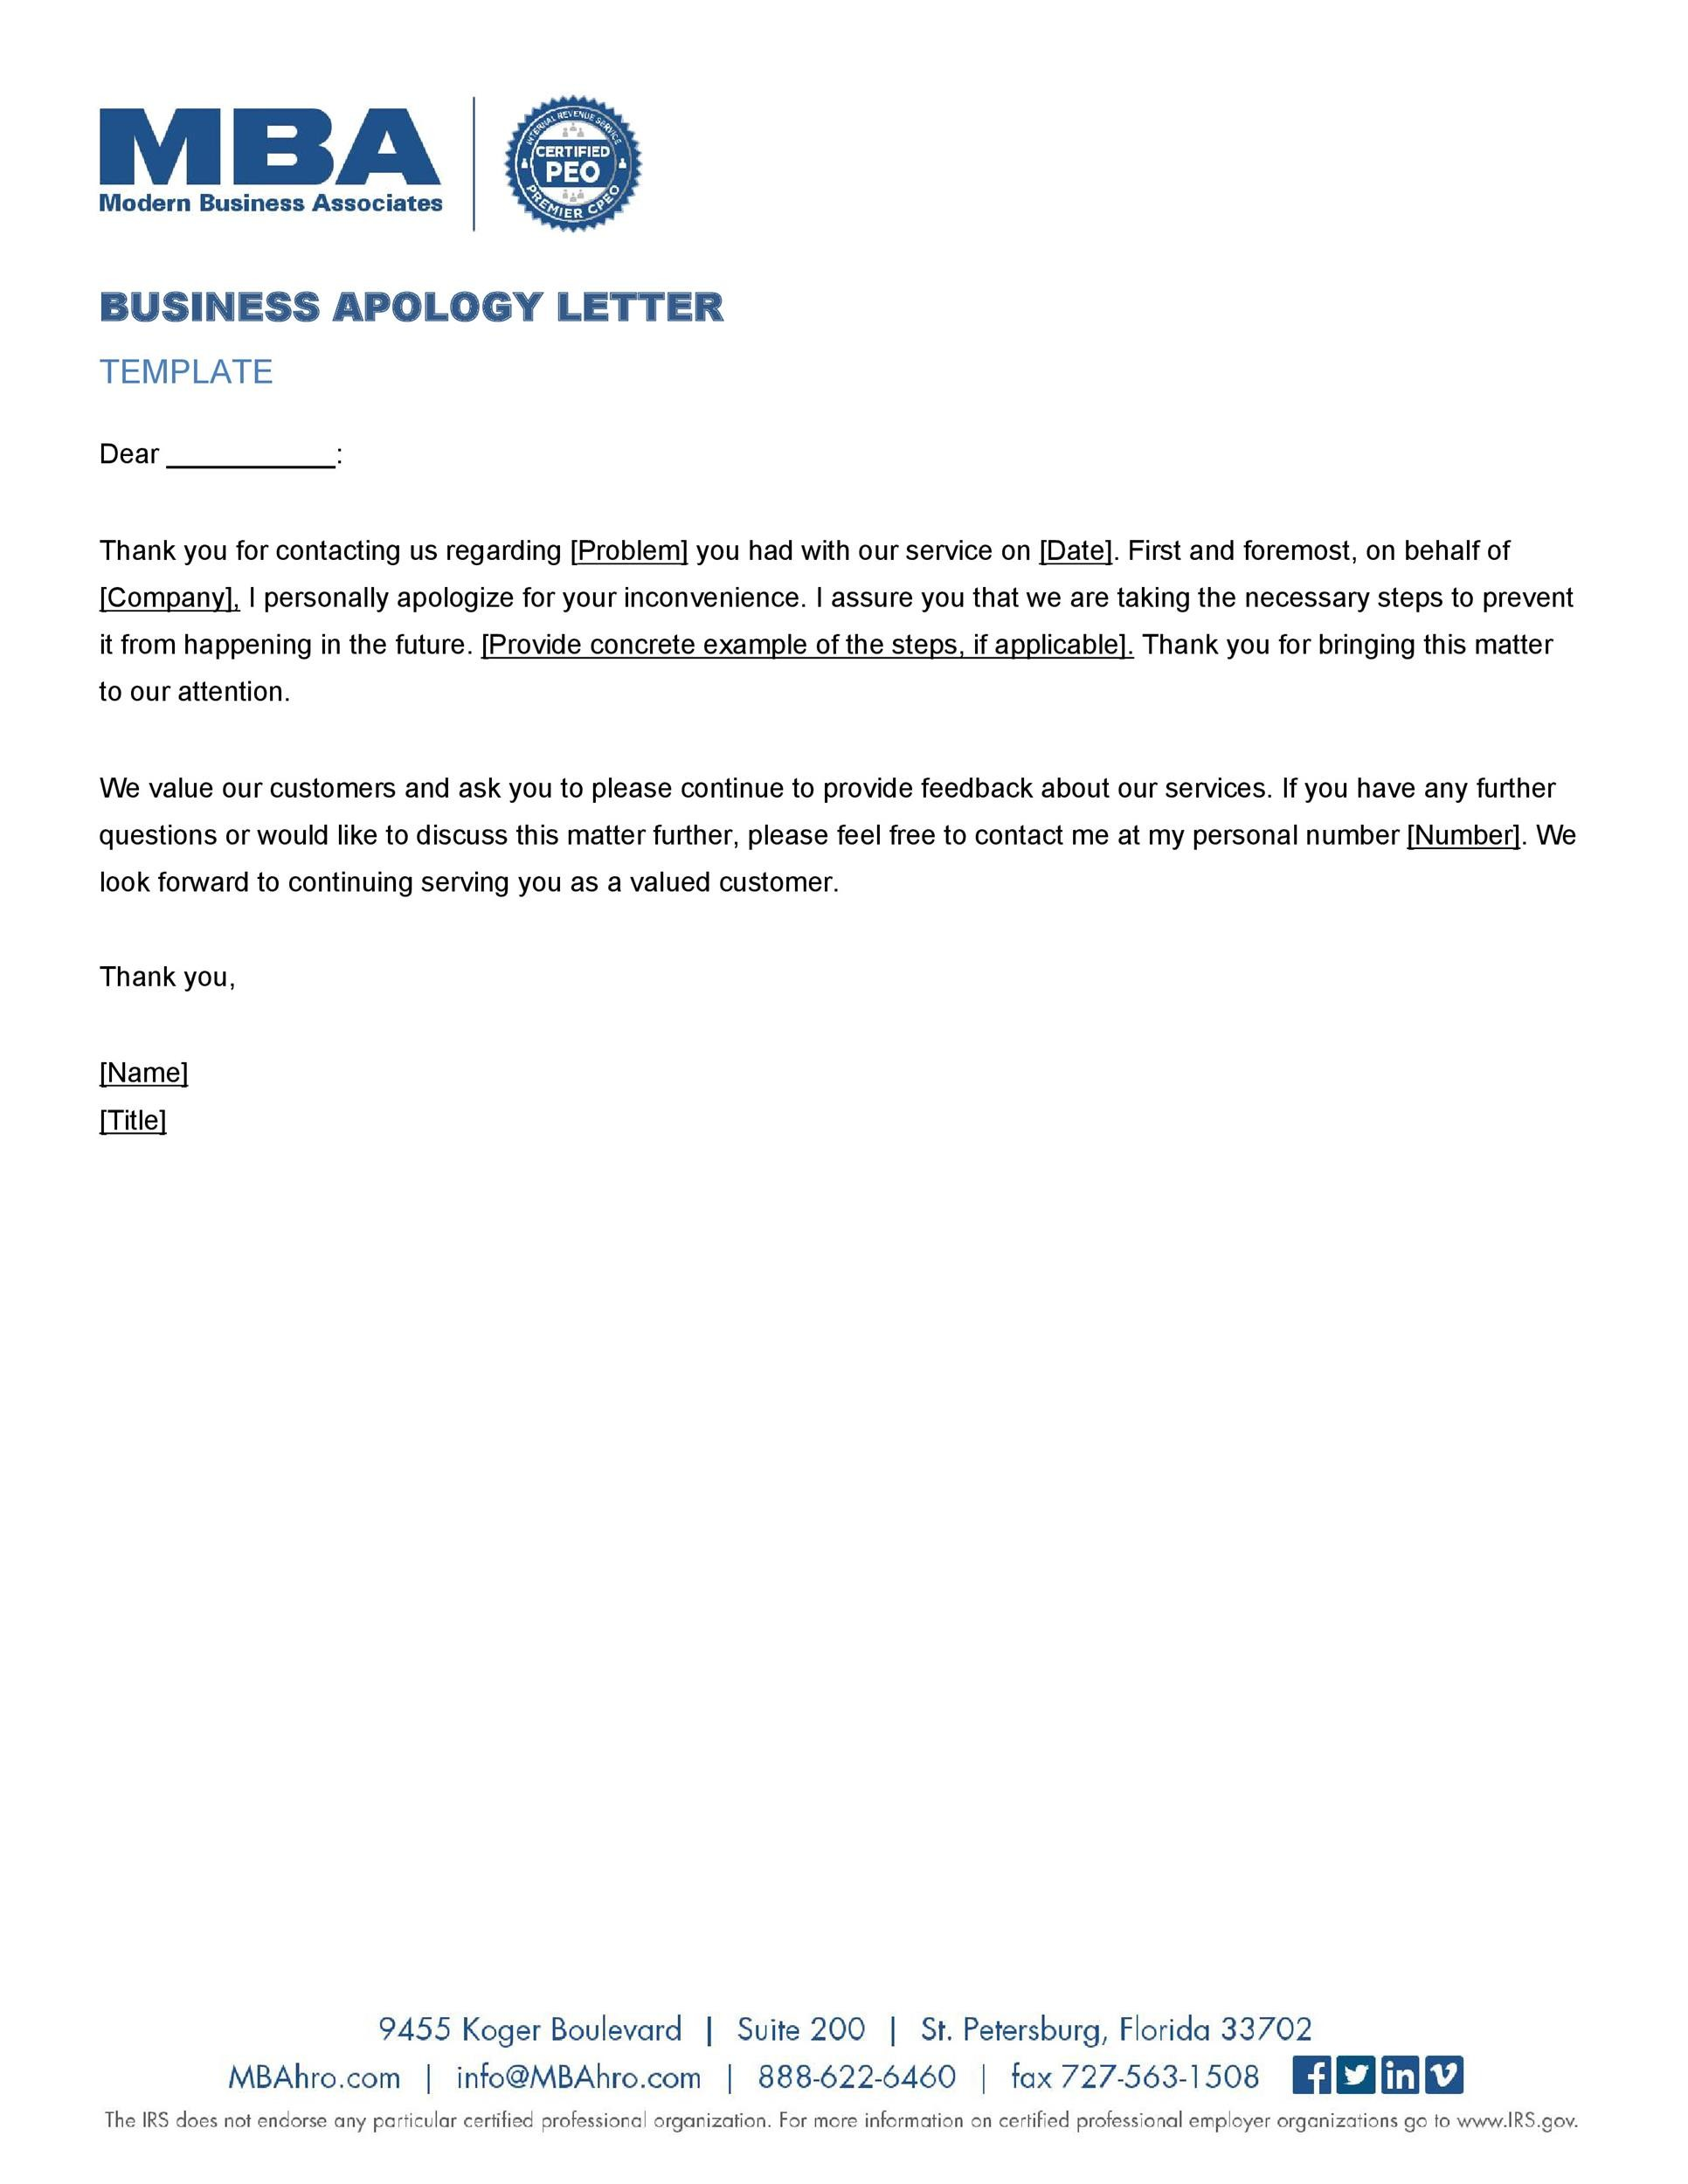 48 useful apology letter templates   u0026 sorry letter samples